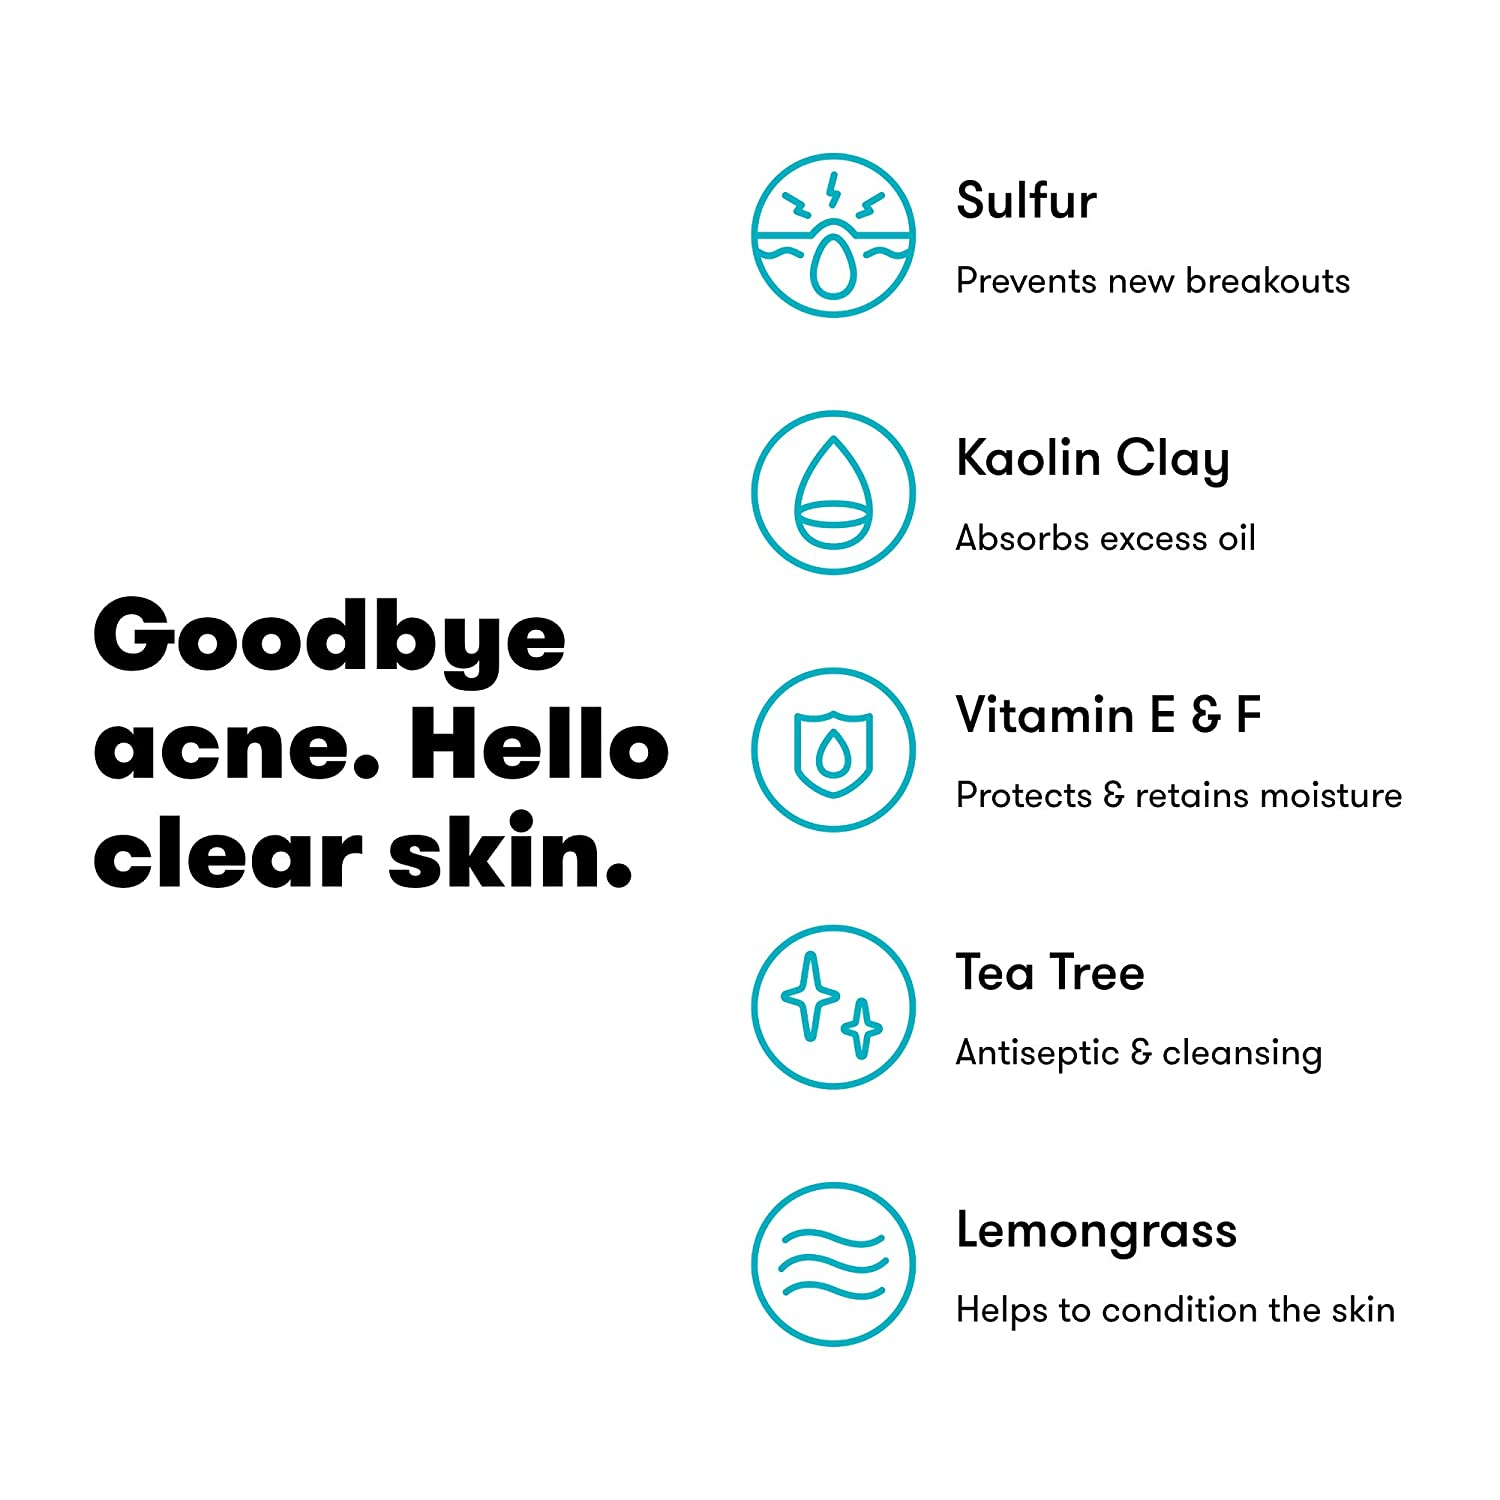 Proactiv Skin Purifying Acne Face Mask and Acne Spot Treatment - Detoxifying Facial Mask with 6% Sulfur 3 Oz 90 Day Supply : Beauty